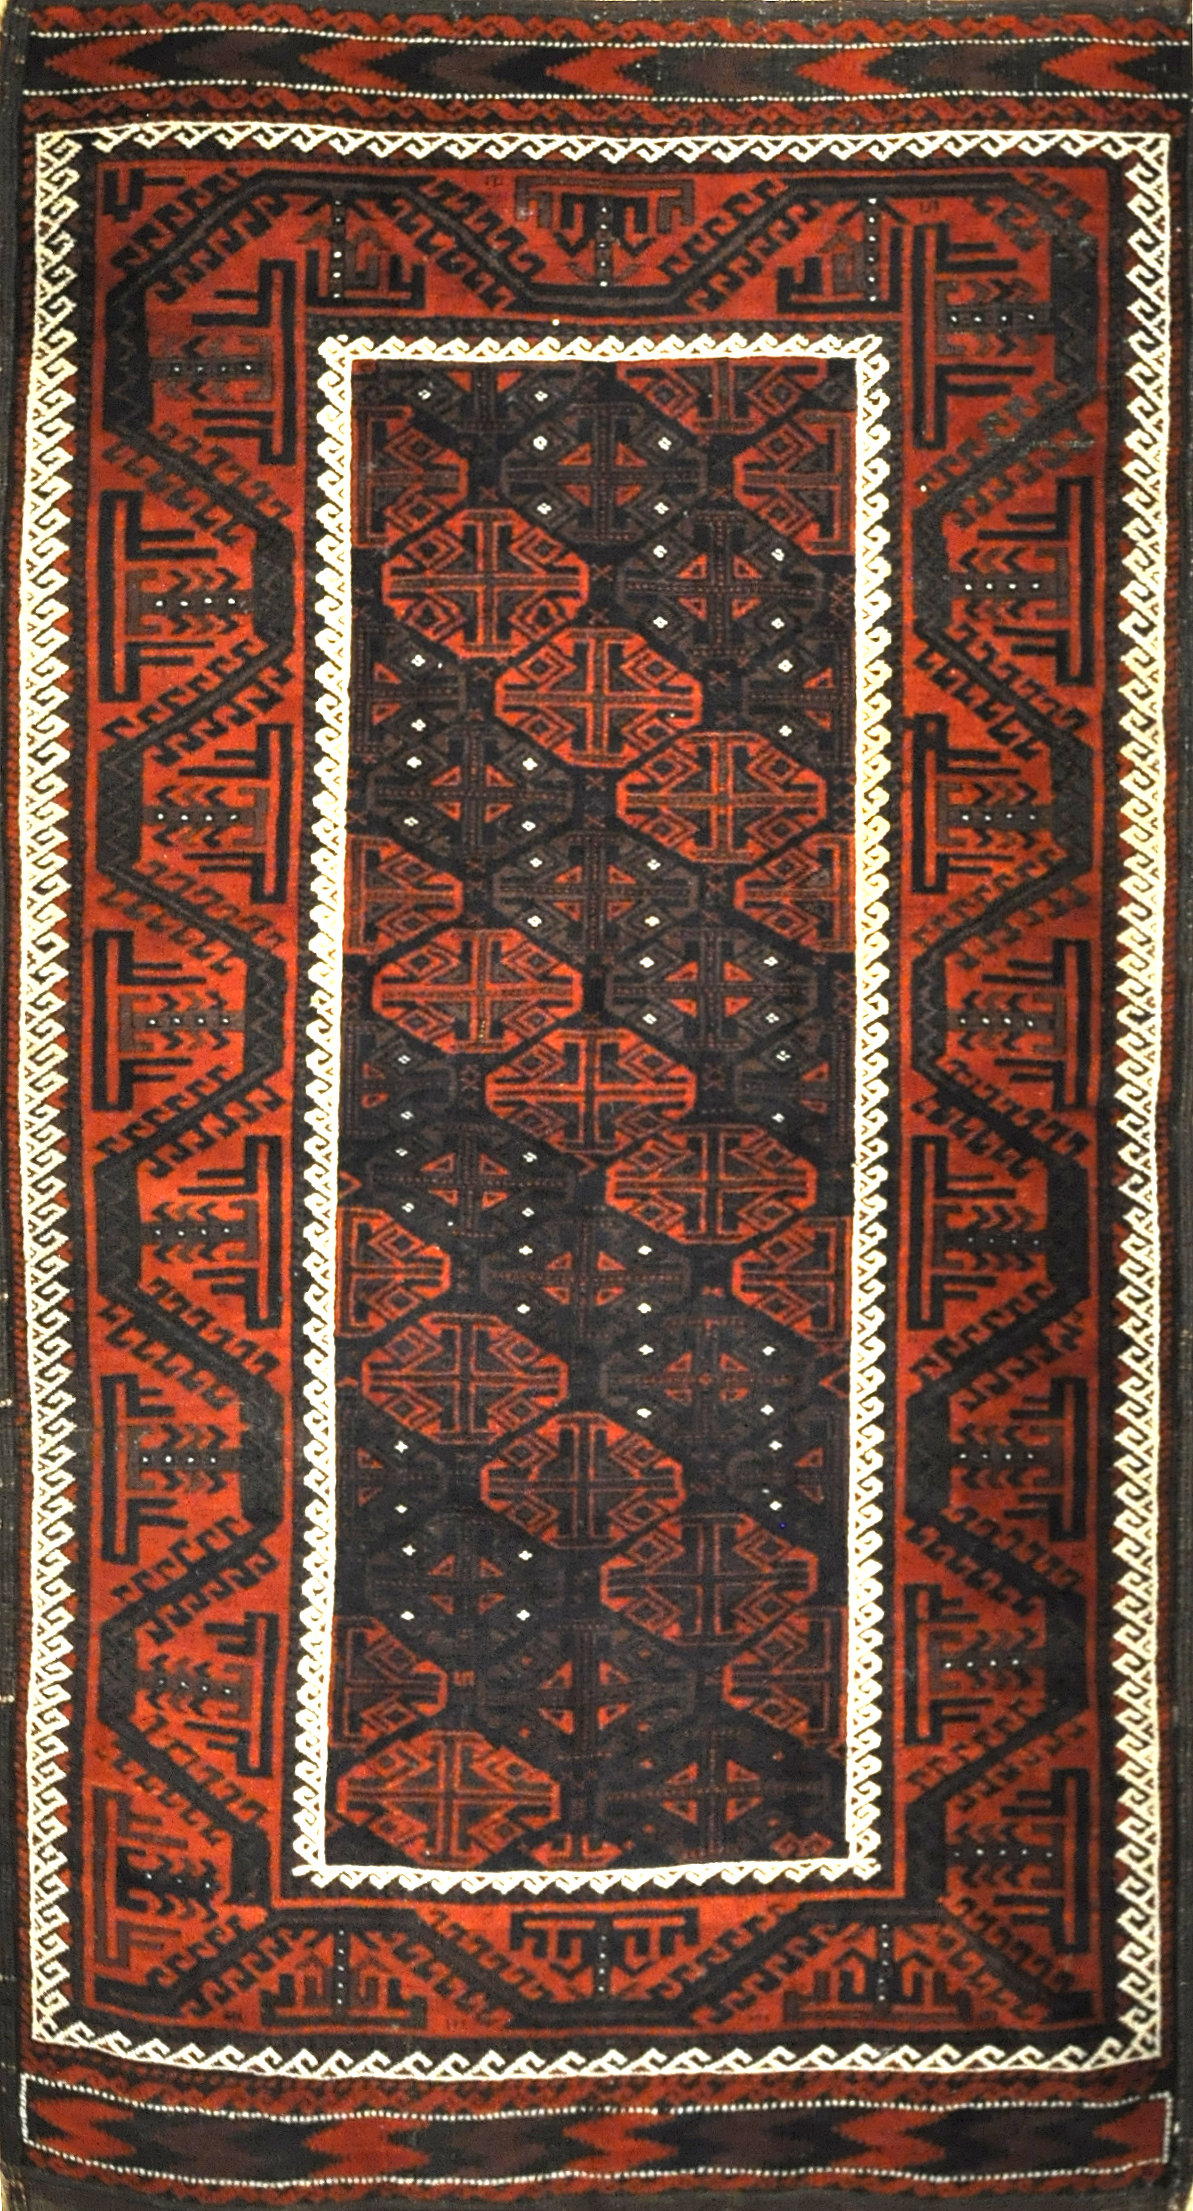 Antique Original Afghani Beluch Circa 1900. A piece of genuine woven carpet art sold by the Santa Barbara Design Center, Rugs and More.